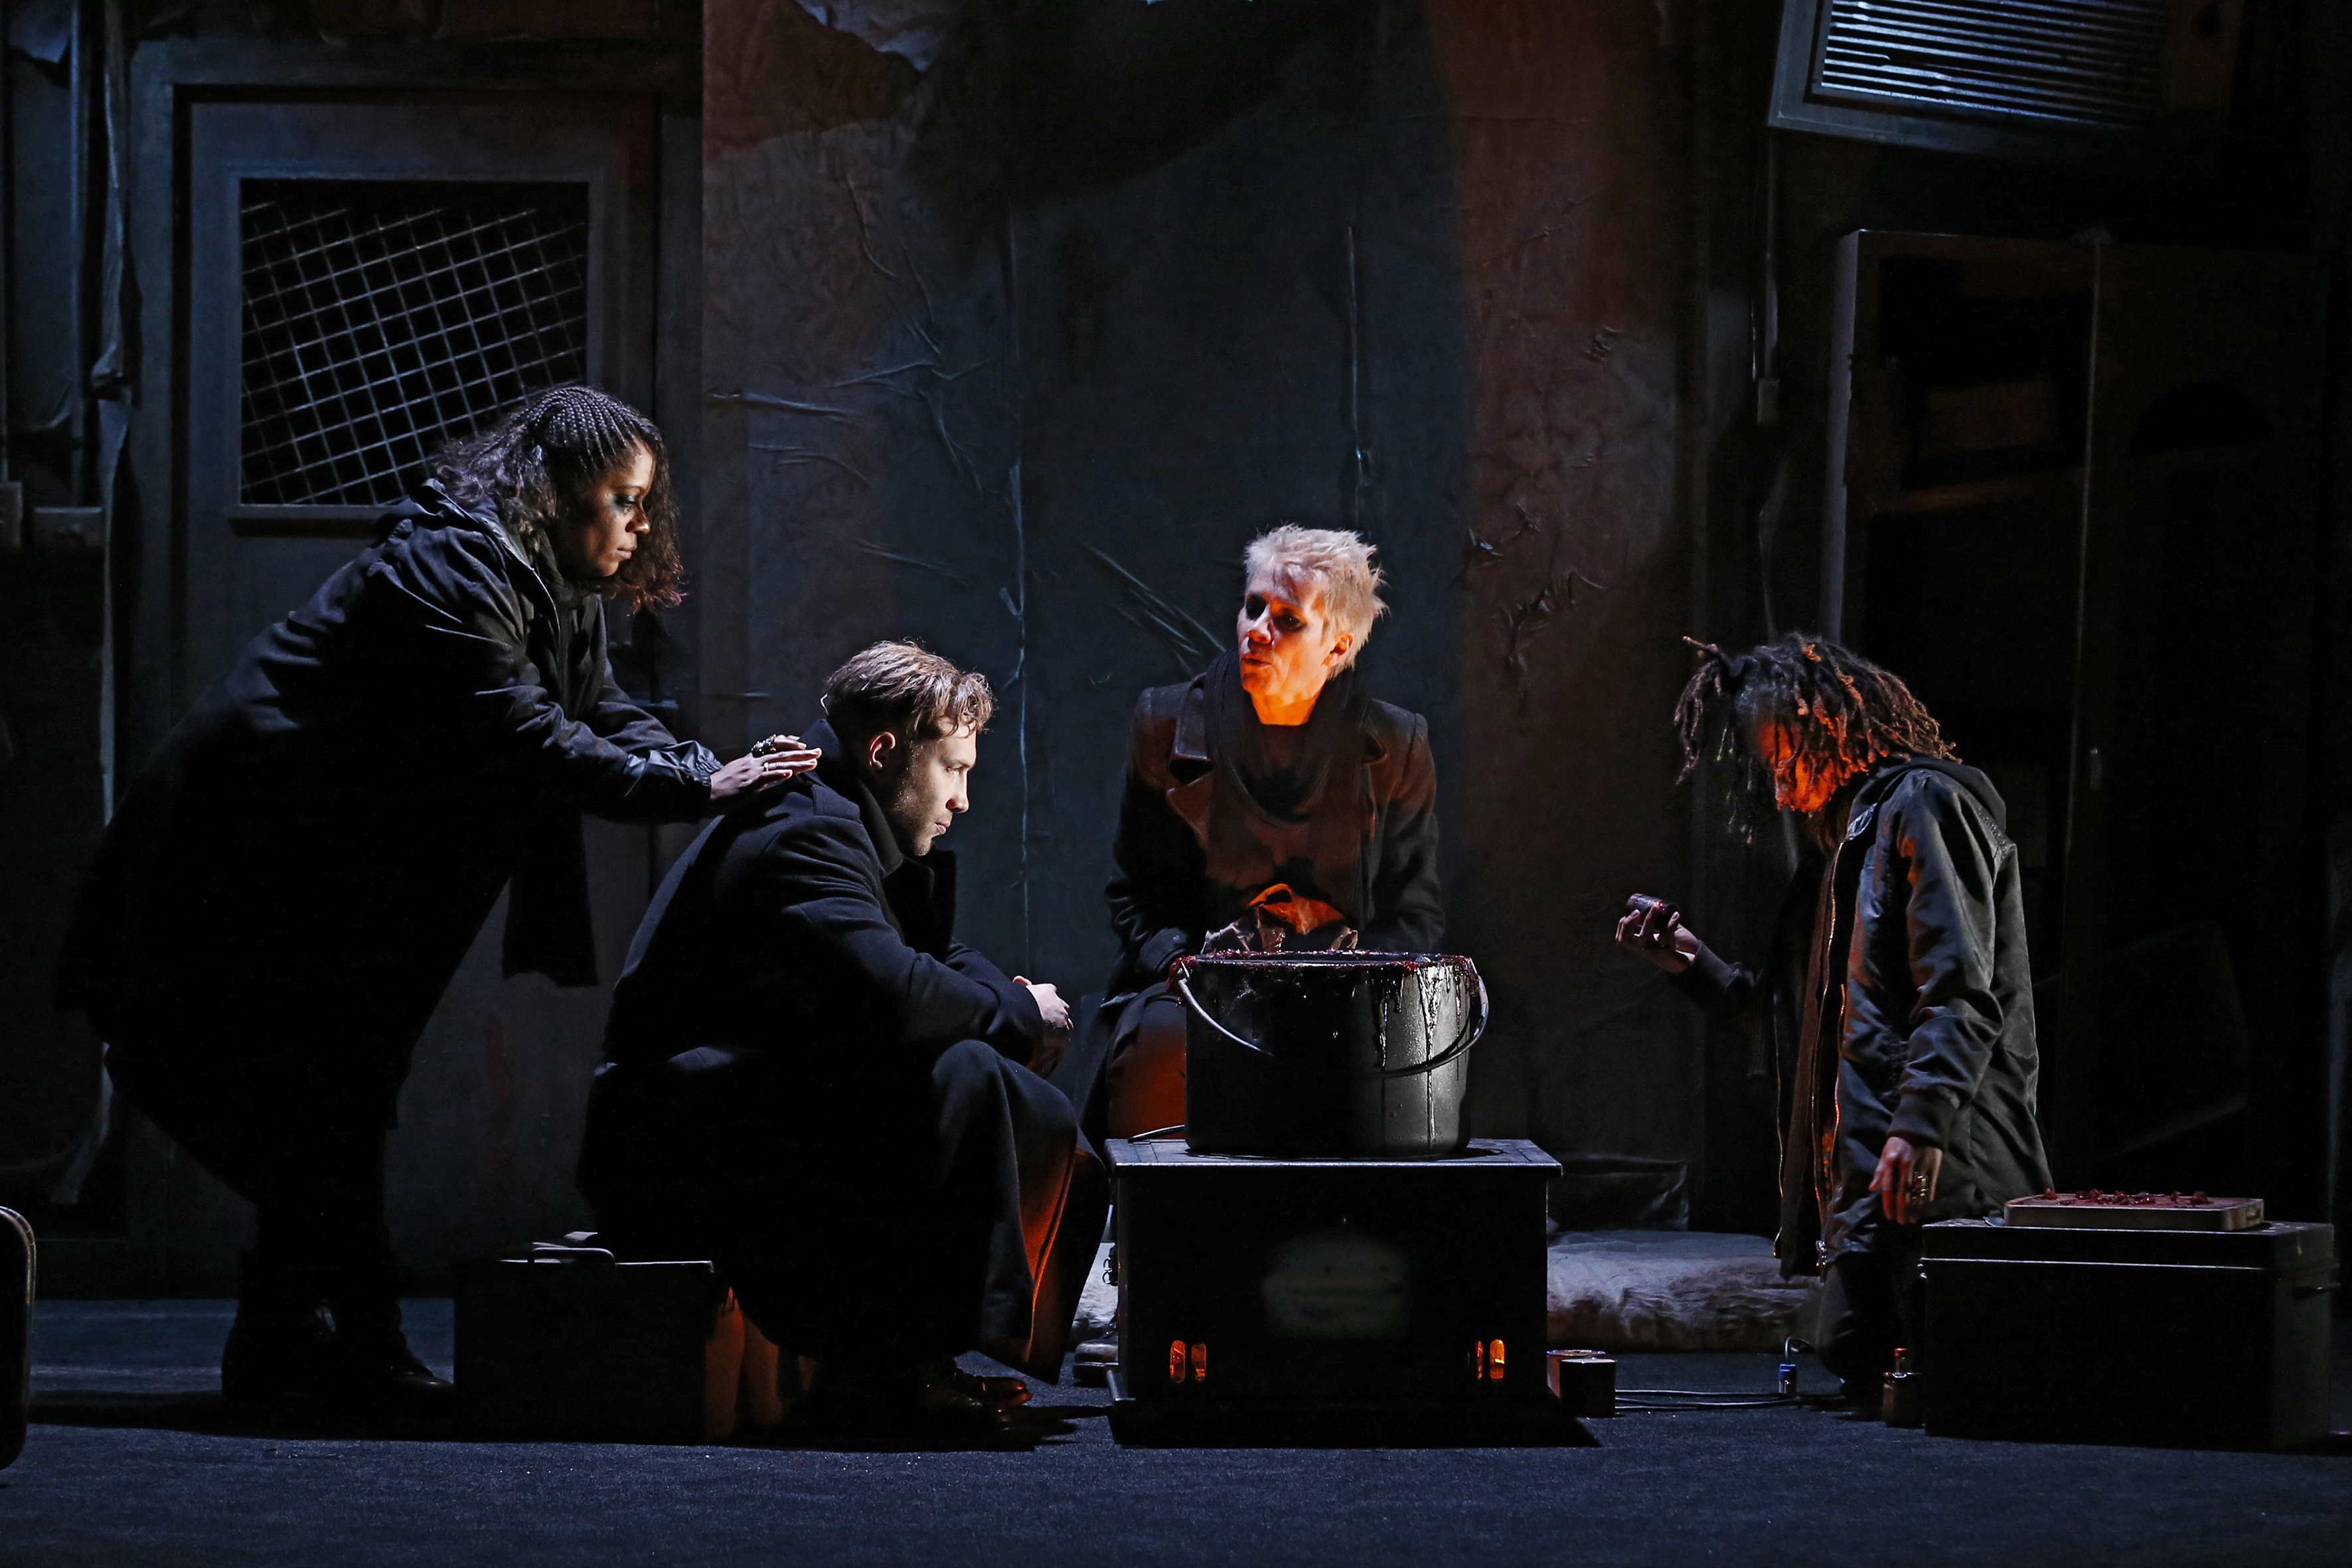 how macbeth is still relevant Essay sample macbeth, an exciting and suspenseful drama written in the seventeenth century by william shakespeare, still engage modern audiences the three universal themes of macbeth are the supernatural, the conflicts of order and ambition, which are still relevant today.